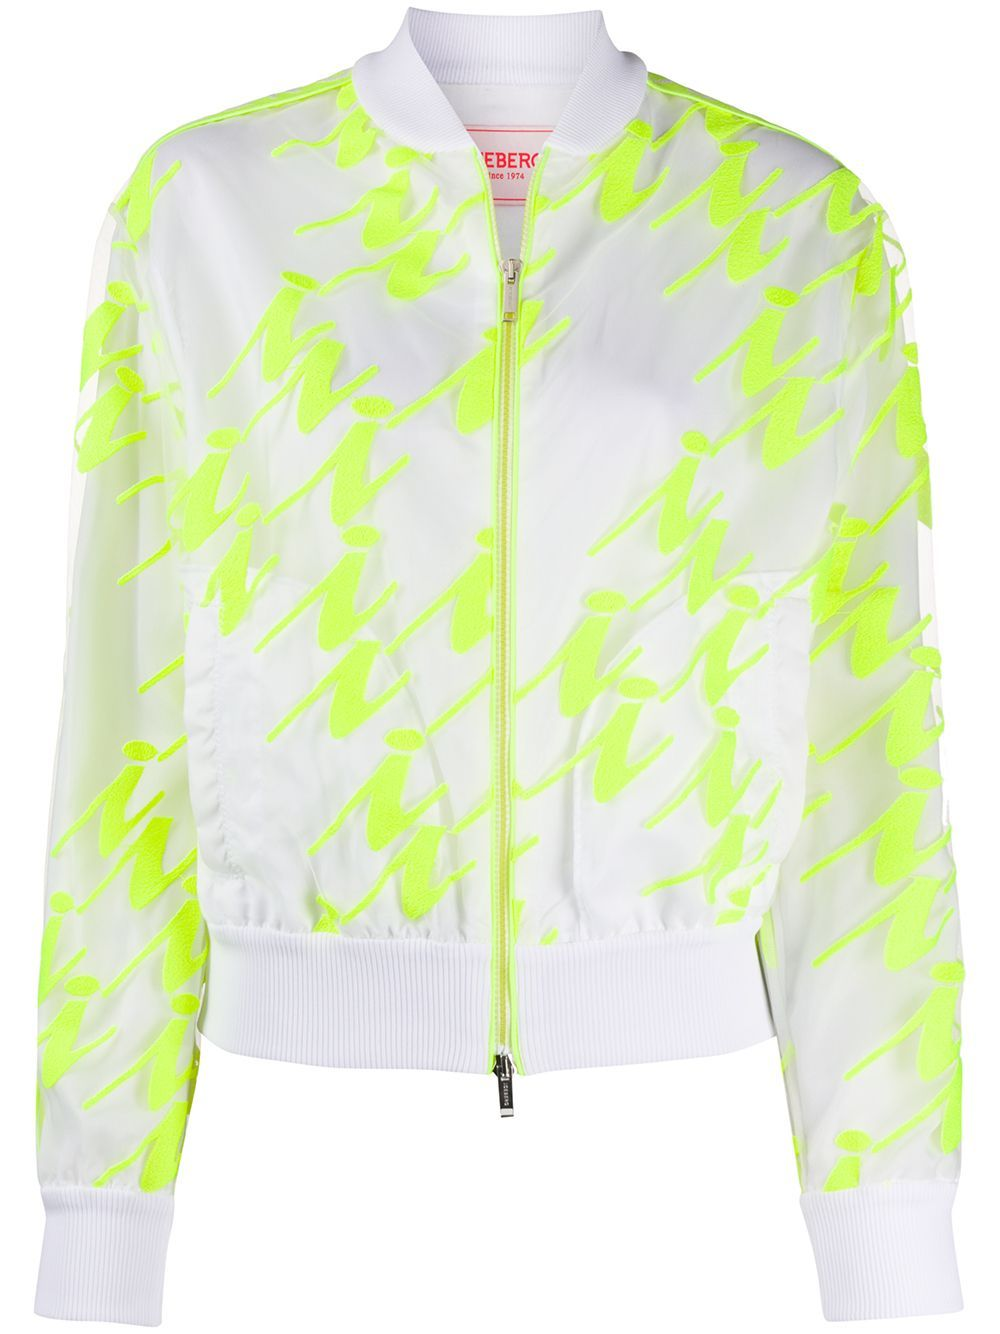 Iceberg Neon Panel Bomber Jacket Farfetch Jackets Bomber Jacket Couture Outfits [ 1334 x 1000 Pixel ]